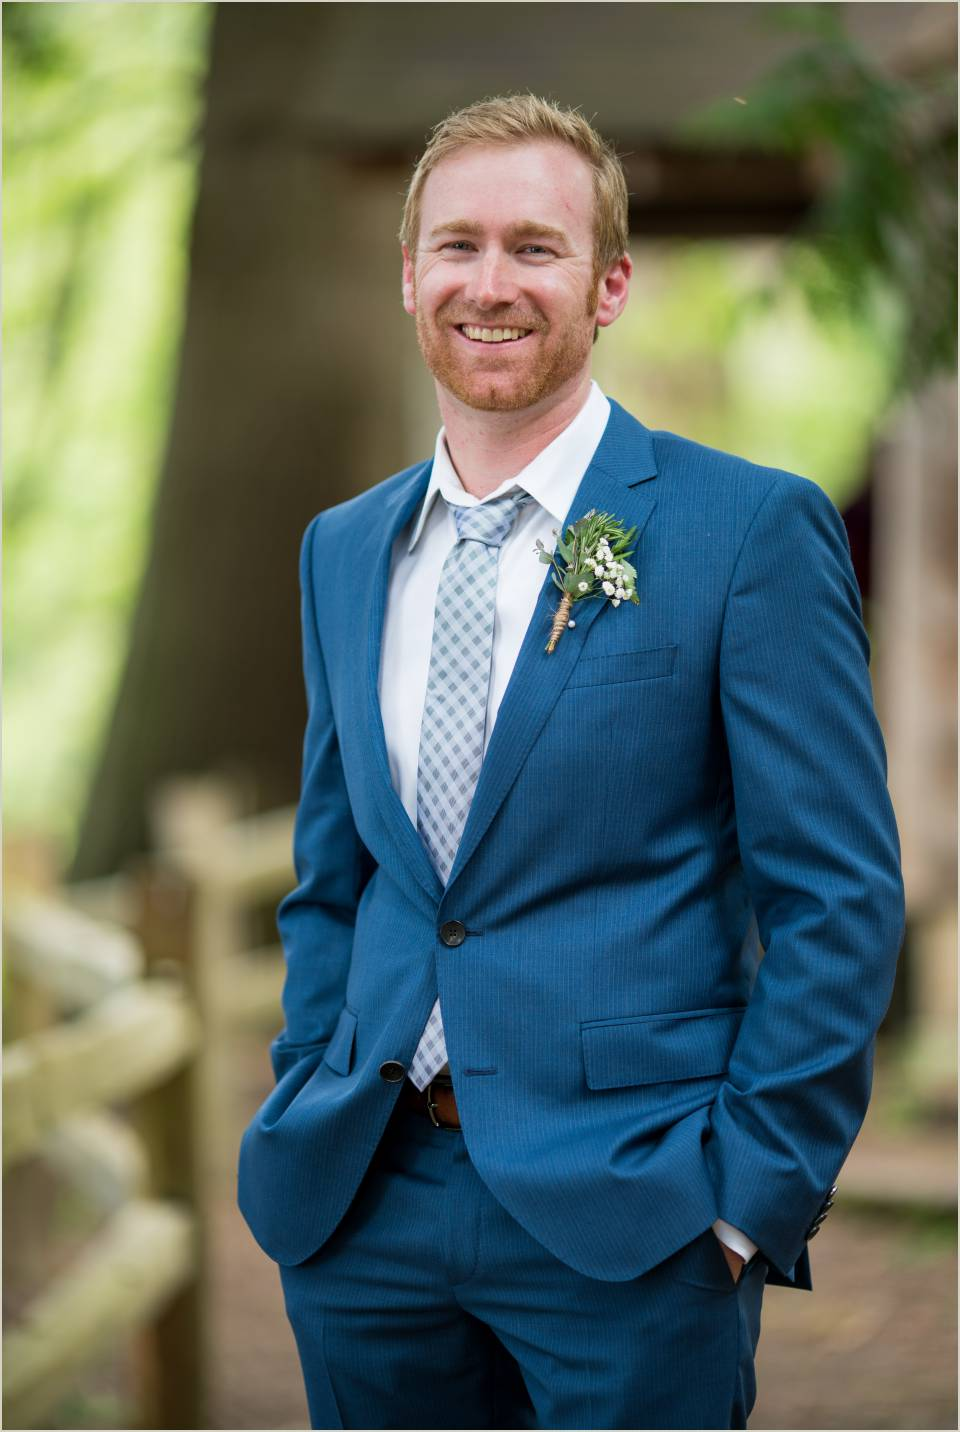 groom in navy suit for outdoor wedding